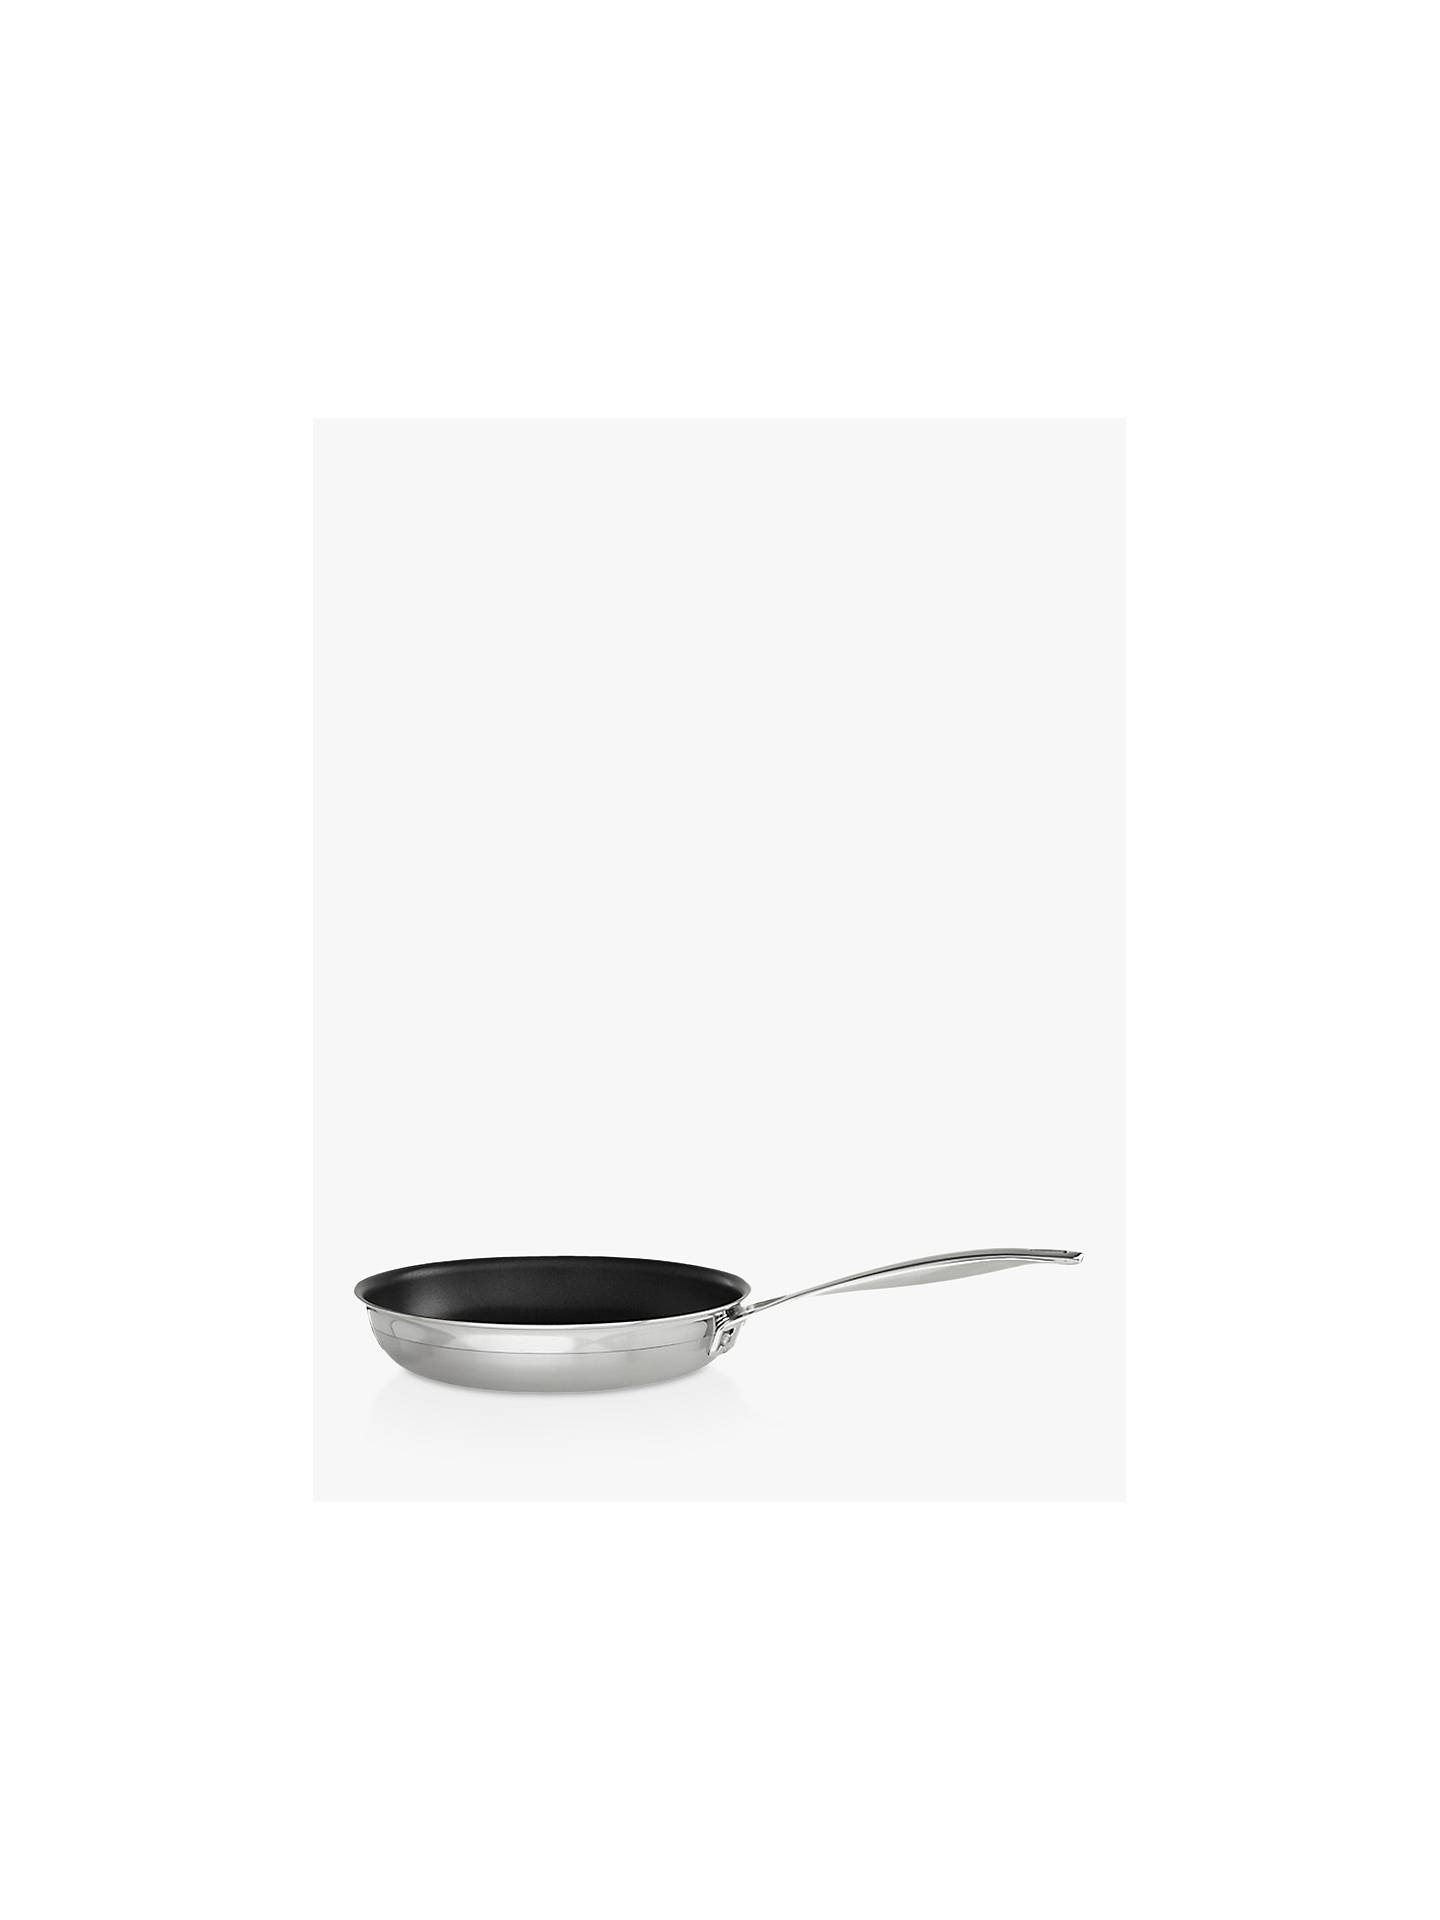 BuyLe Creuset 3-Ply Stainless Steel 24cm Non-Stick Frying Pan Online at johnlewis.com